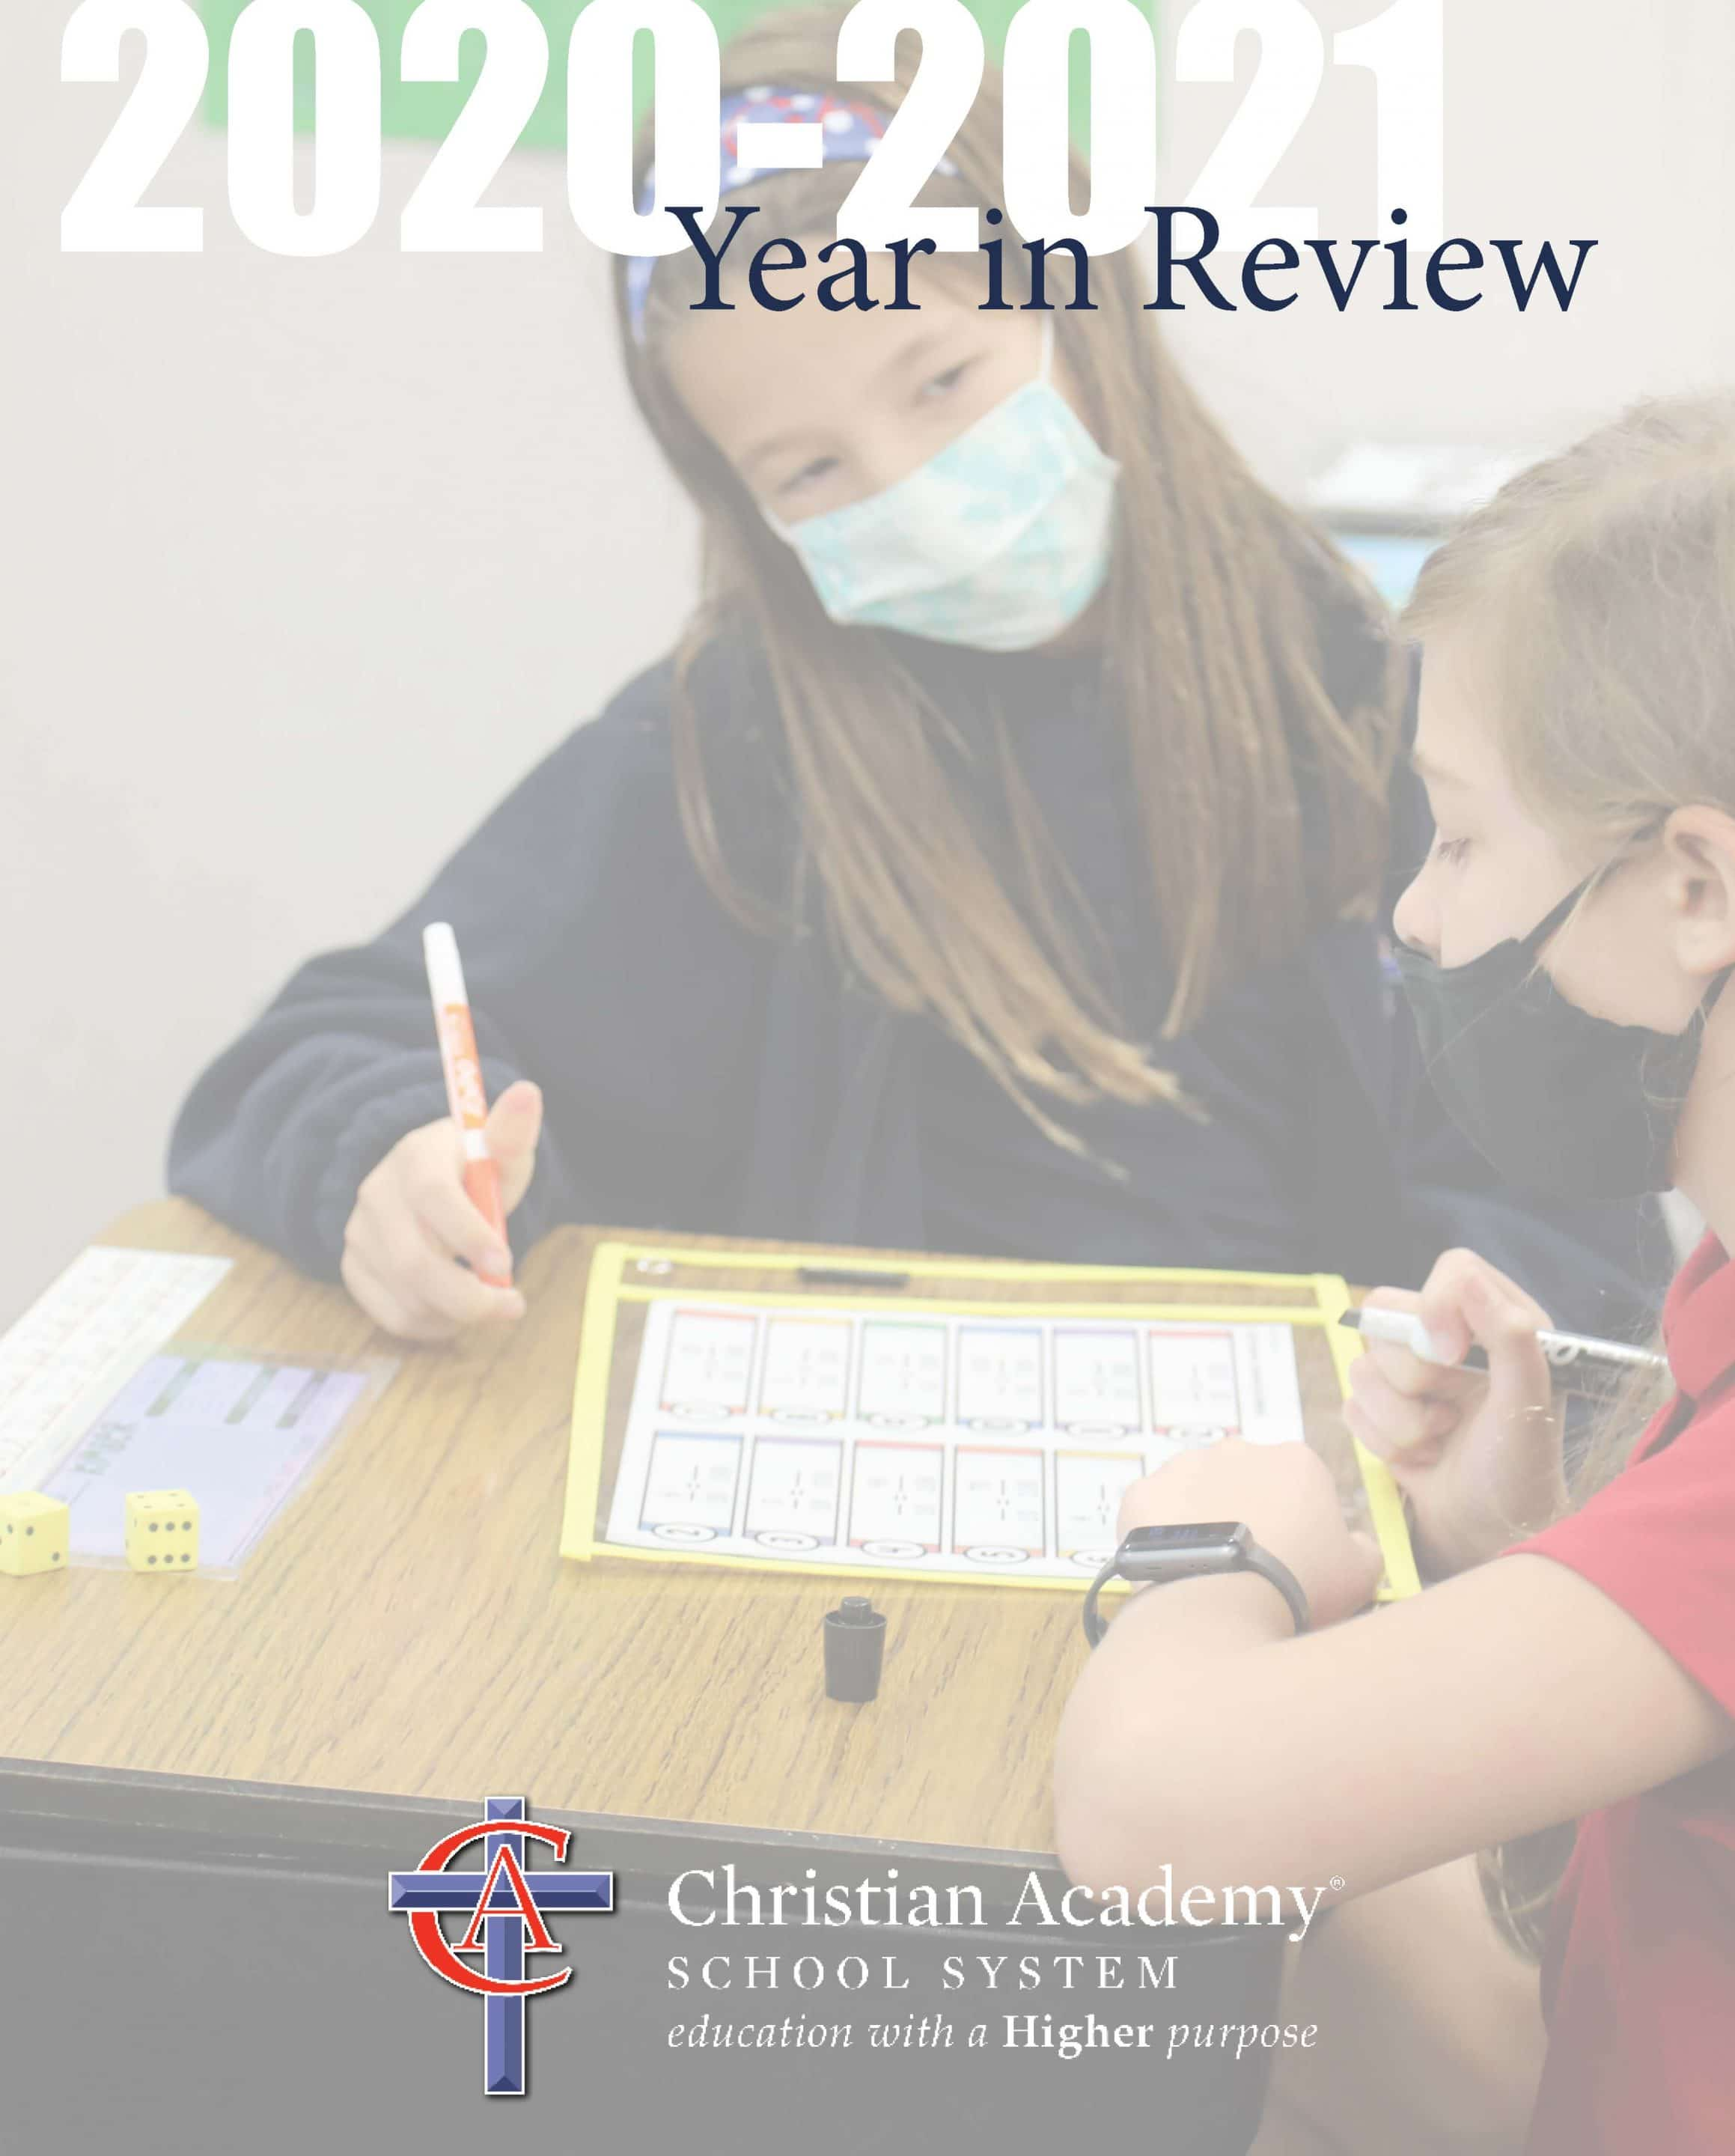 Christian Academy School System | 2020-2021 Annual Review and Report